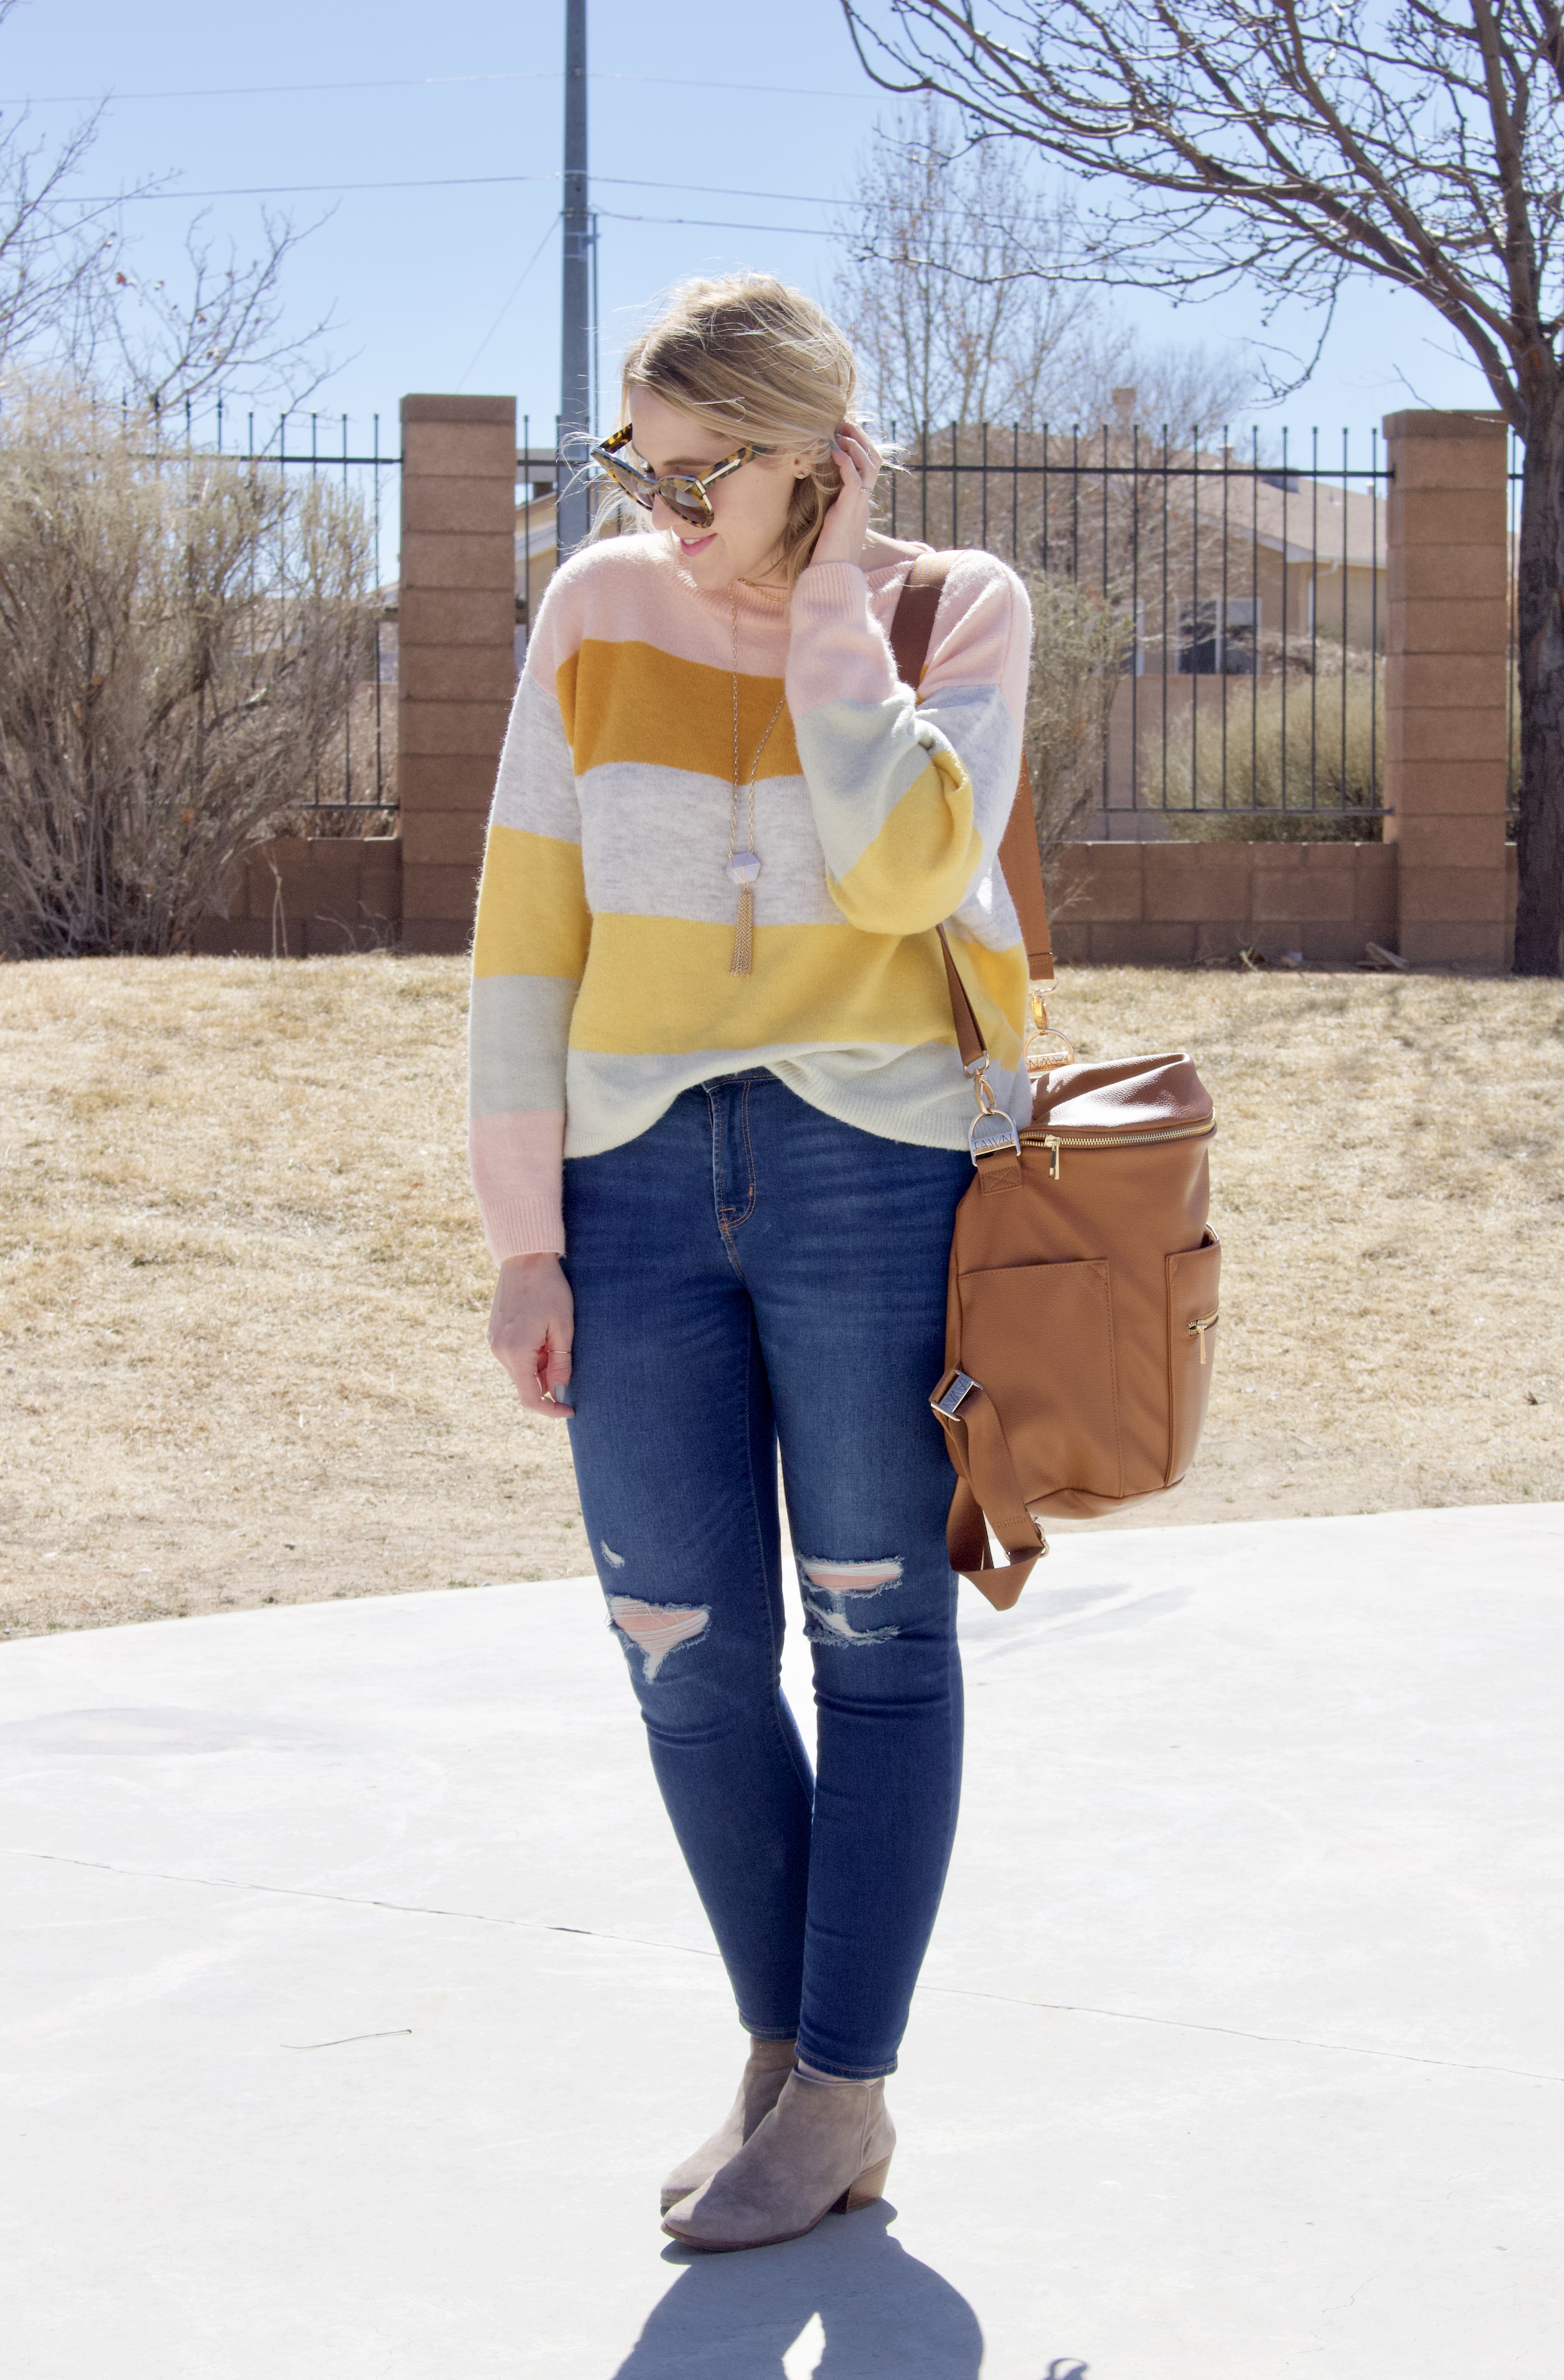 striped sweater from H&M for spring #stripedsweater #springoutfit #springstyle